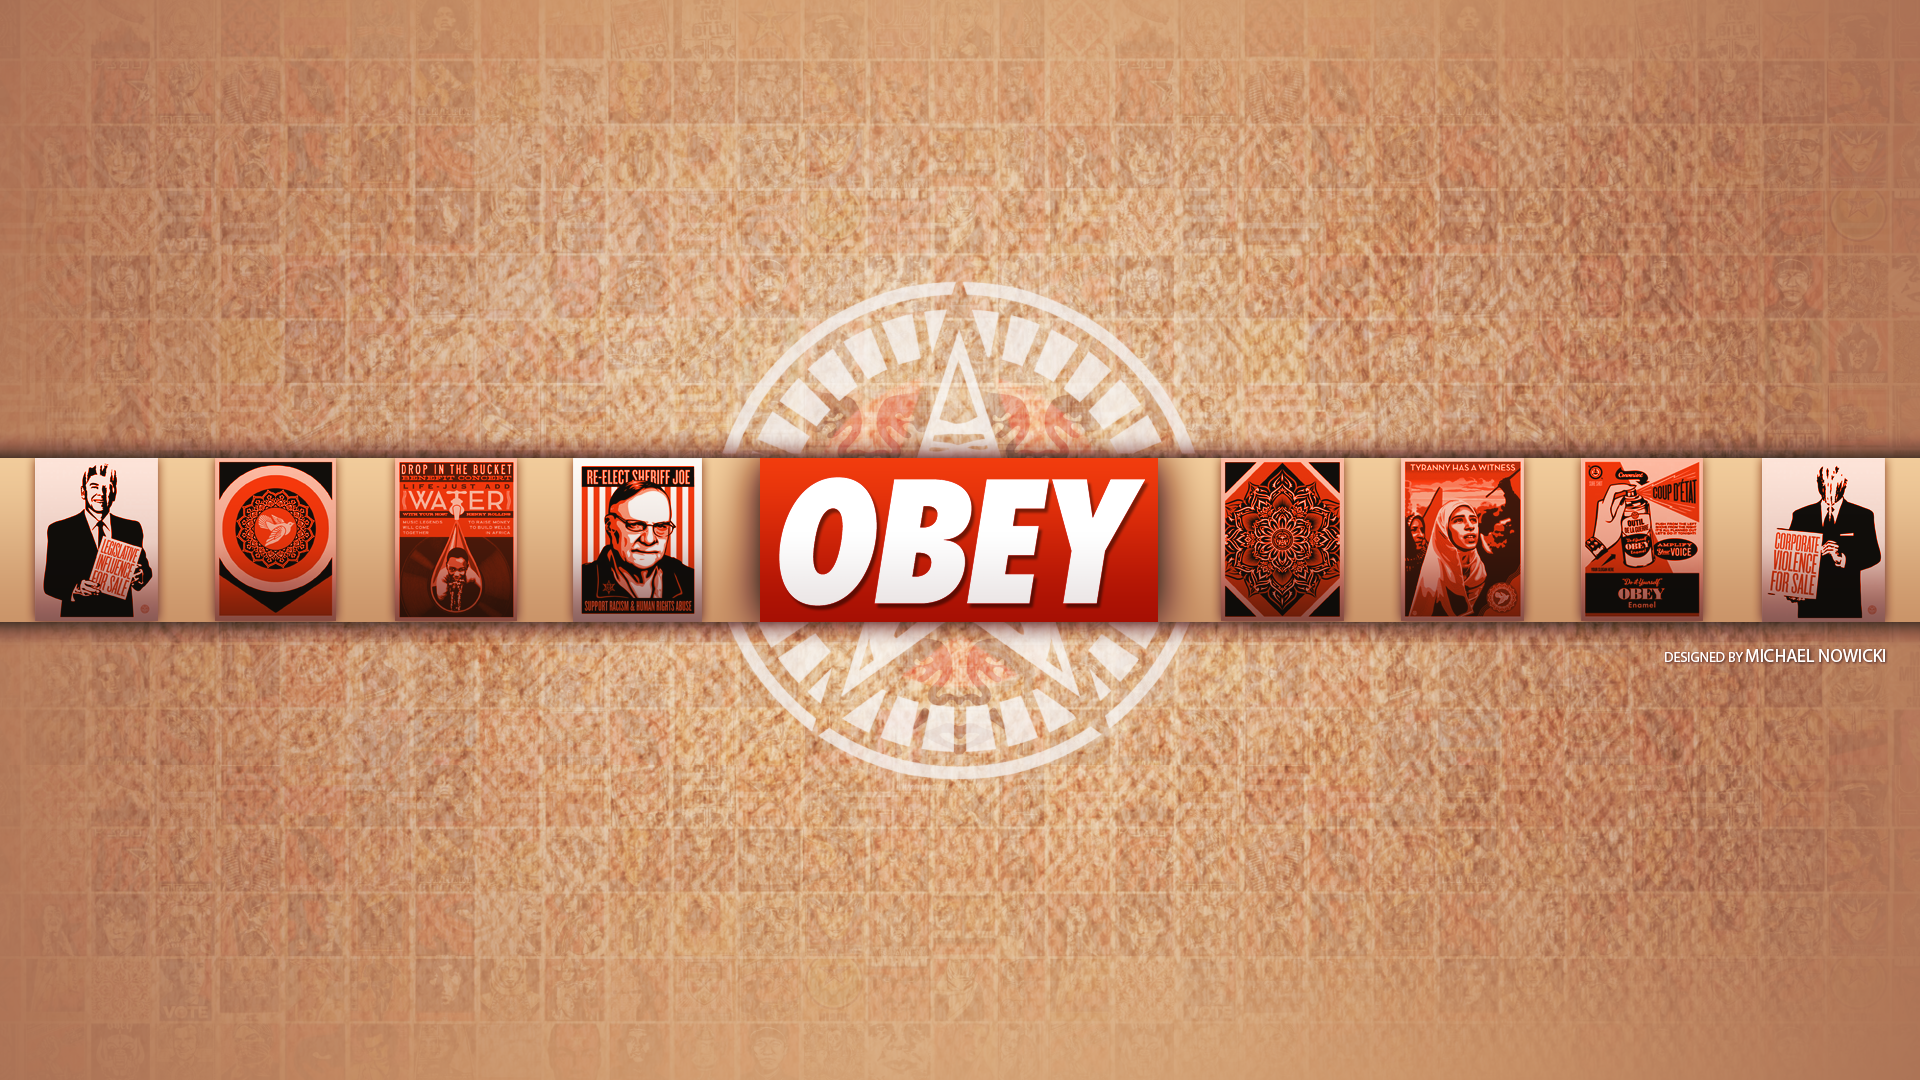 Obey Art Wallpaper Obey desktop w 1920x1080